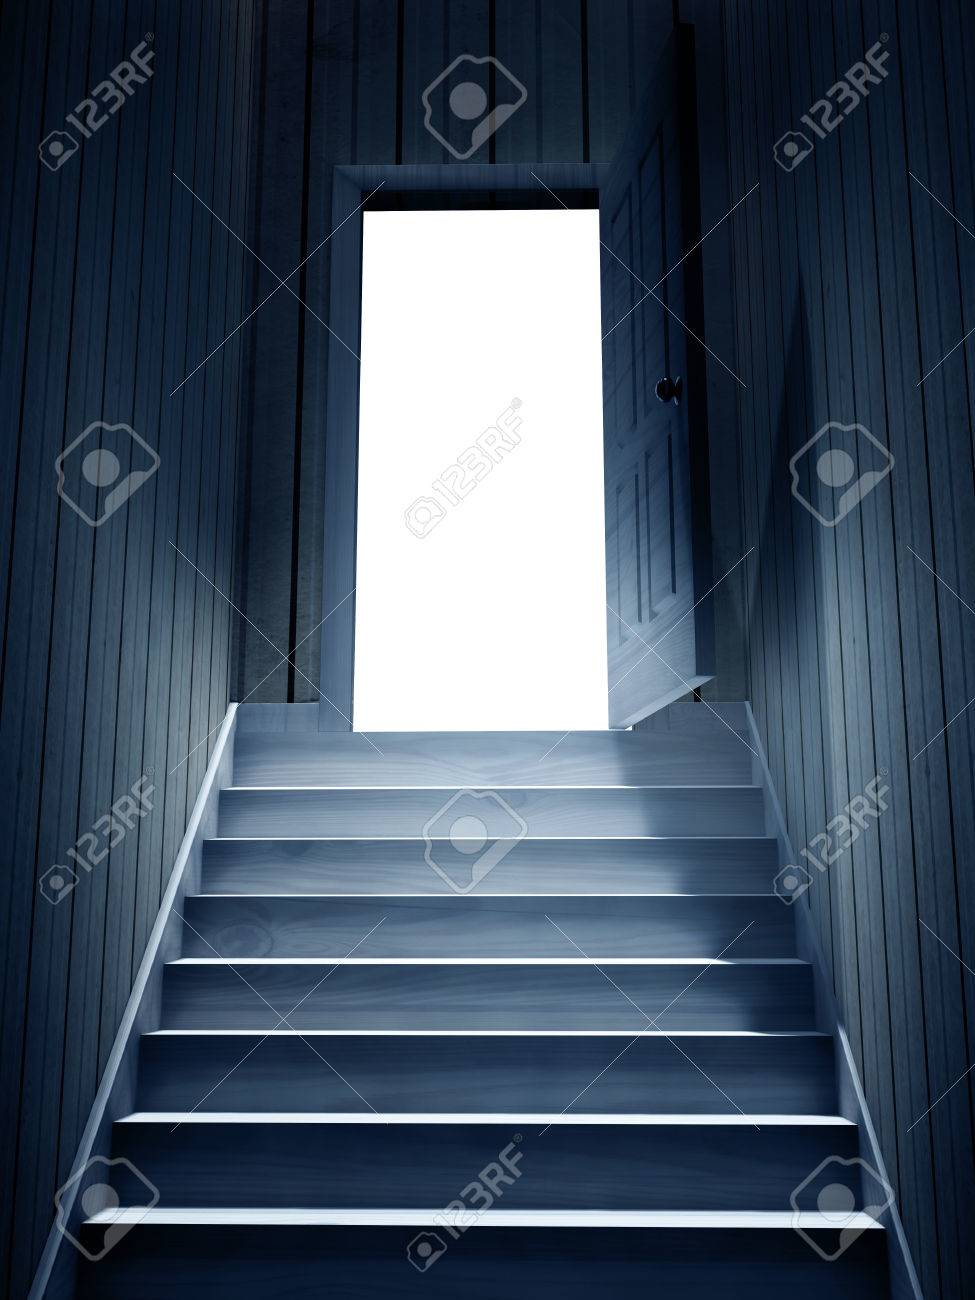 dark basement stairs. Steps leading from a dark basement to open the door 3d render Stock Photo  Leading From A Dark Basement To Open The Door Render Stairs Staircase jpgShepherd s Bush